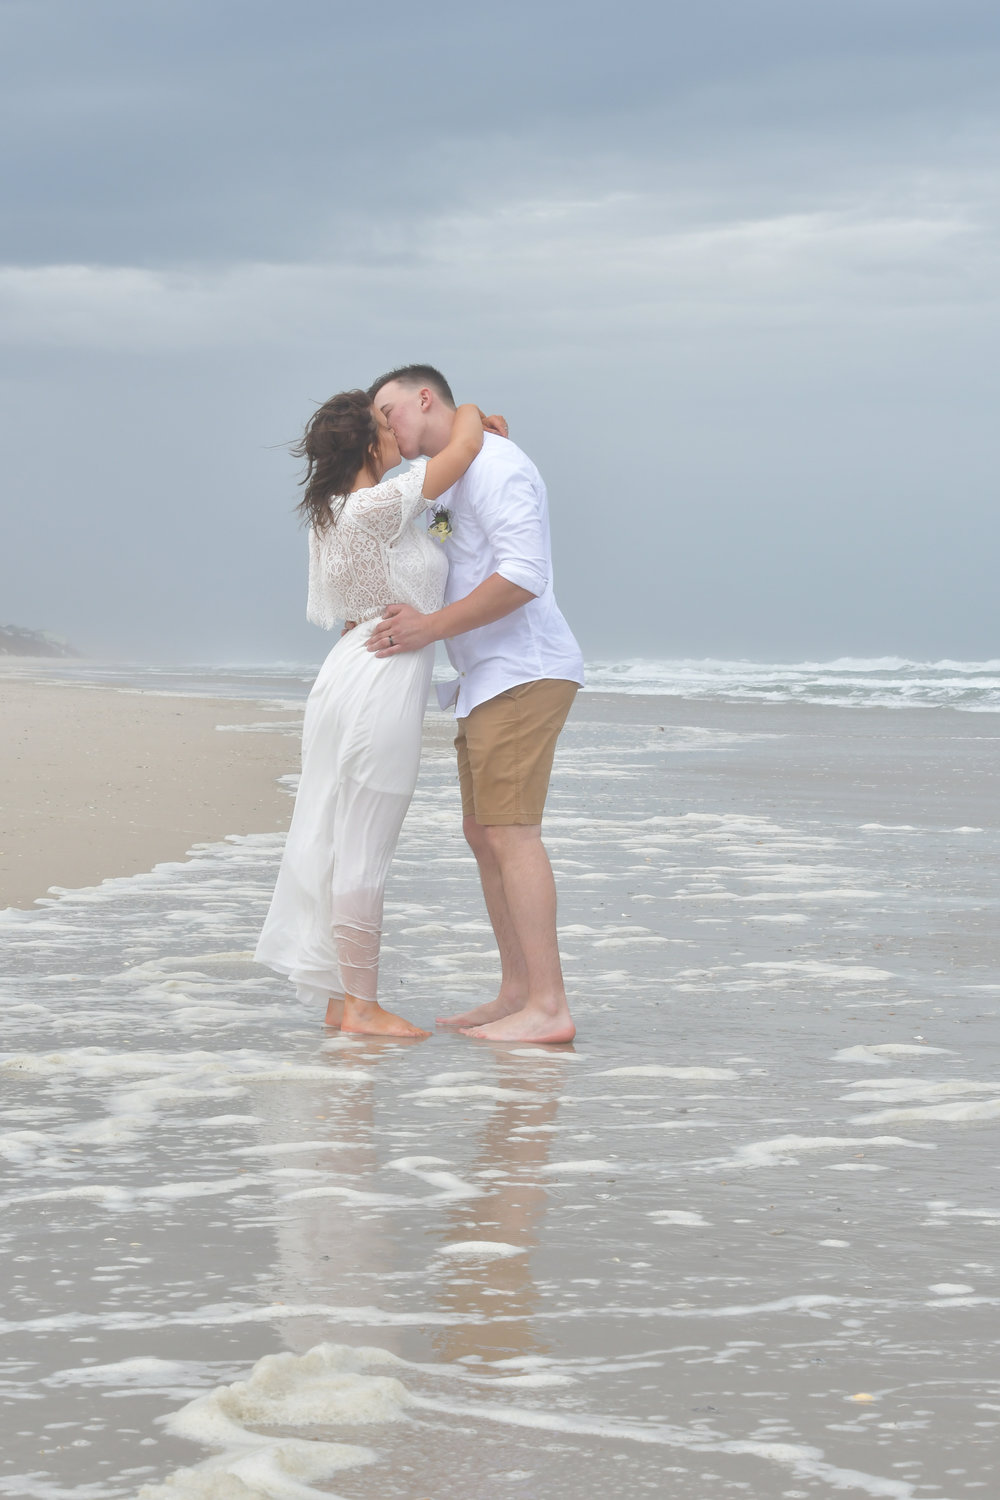 Kiss - Sharing a kiss in the surf in Surf City, Topsail Island, NC. Billy Beach Photography.